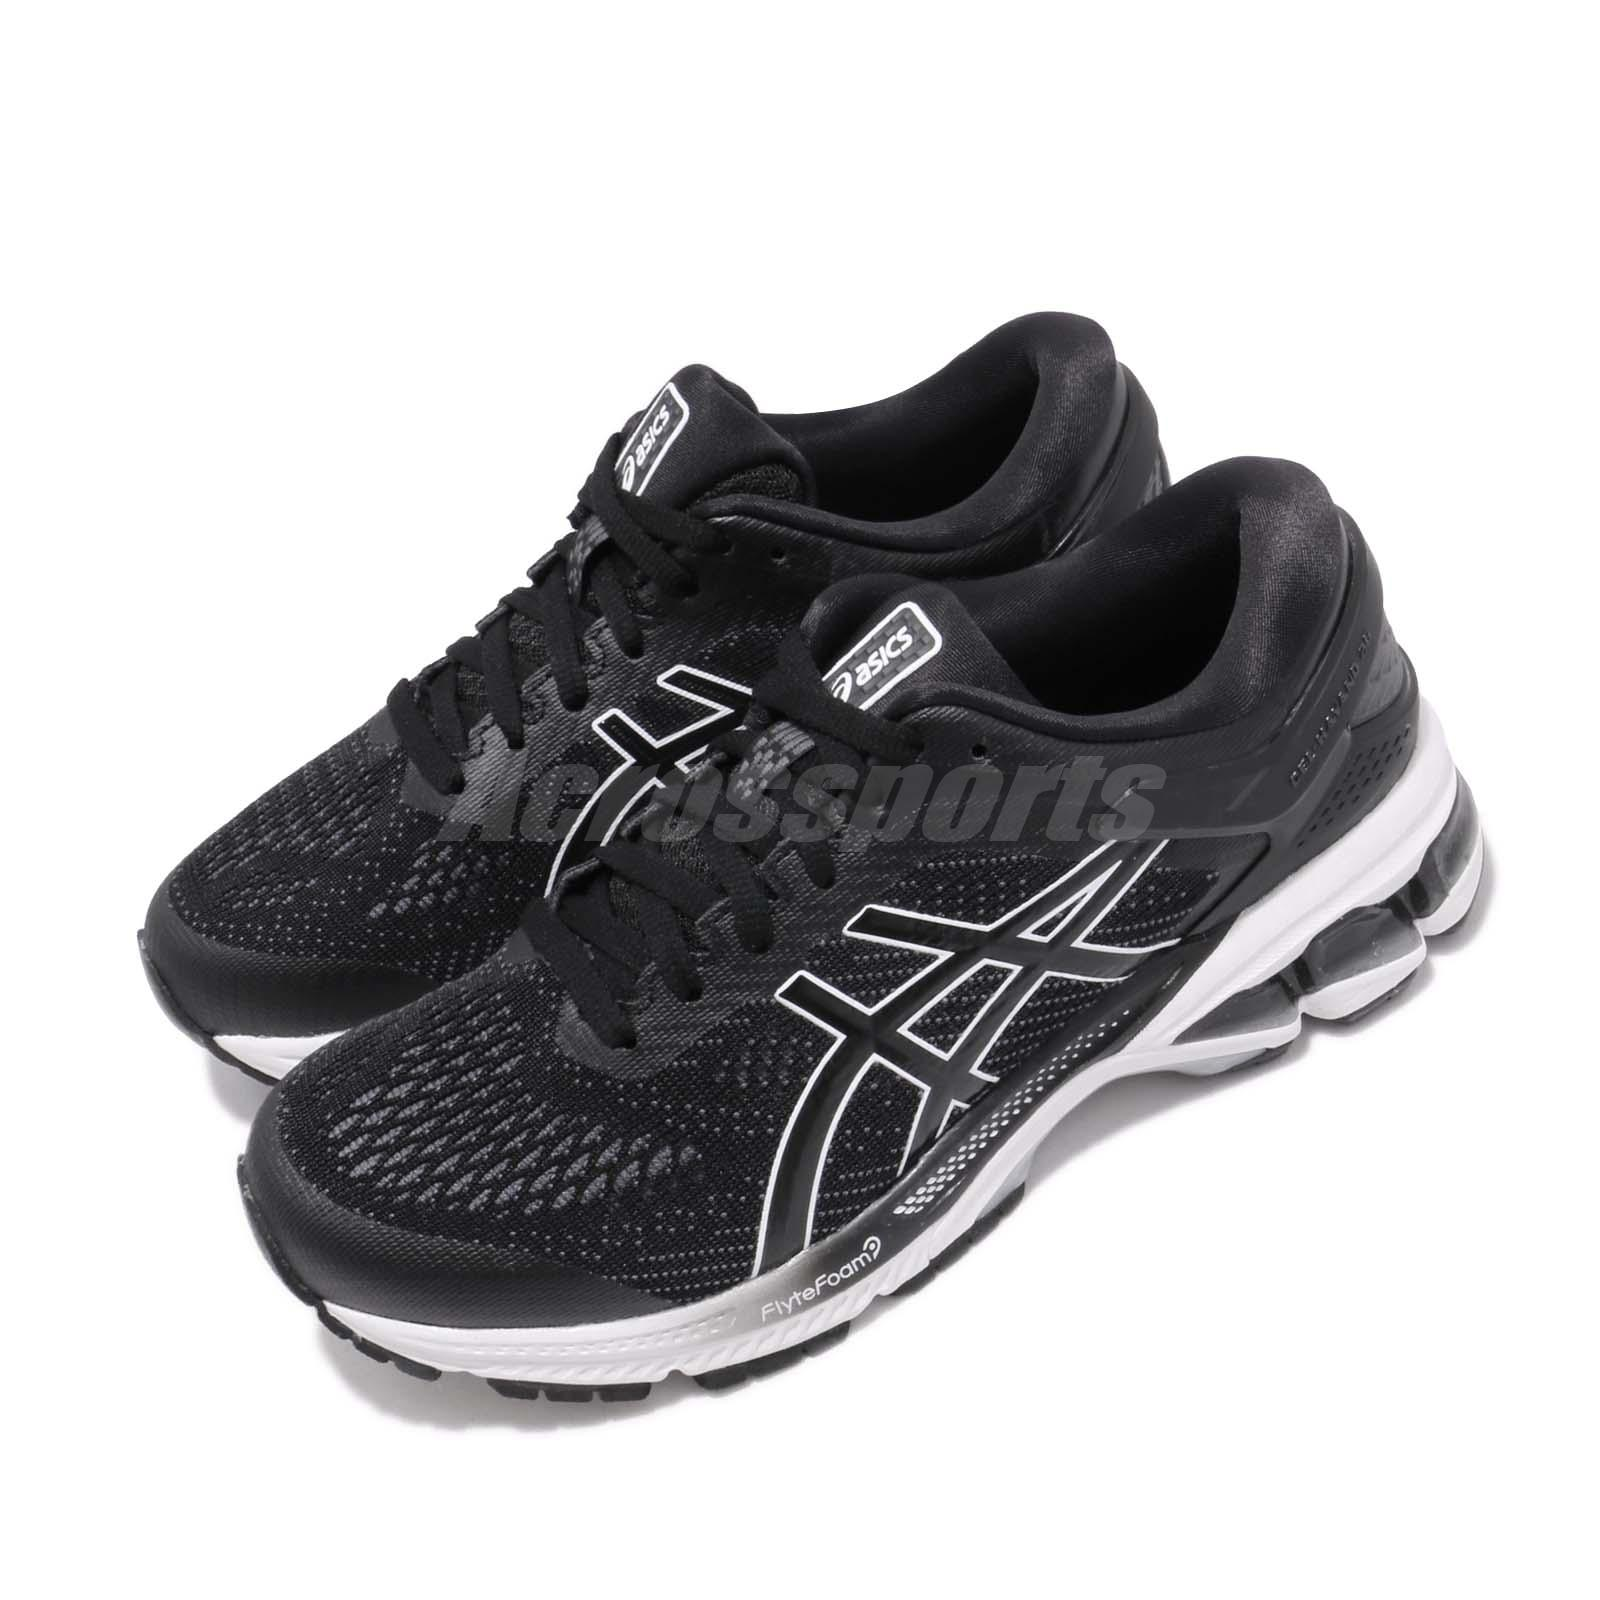 Details about Asics GEL KAYANO 26 Black White Women D Wide Running Shoes 1012A459 001